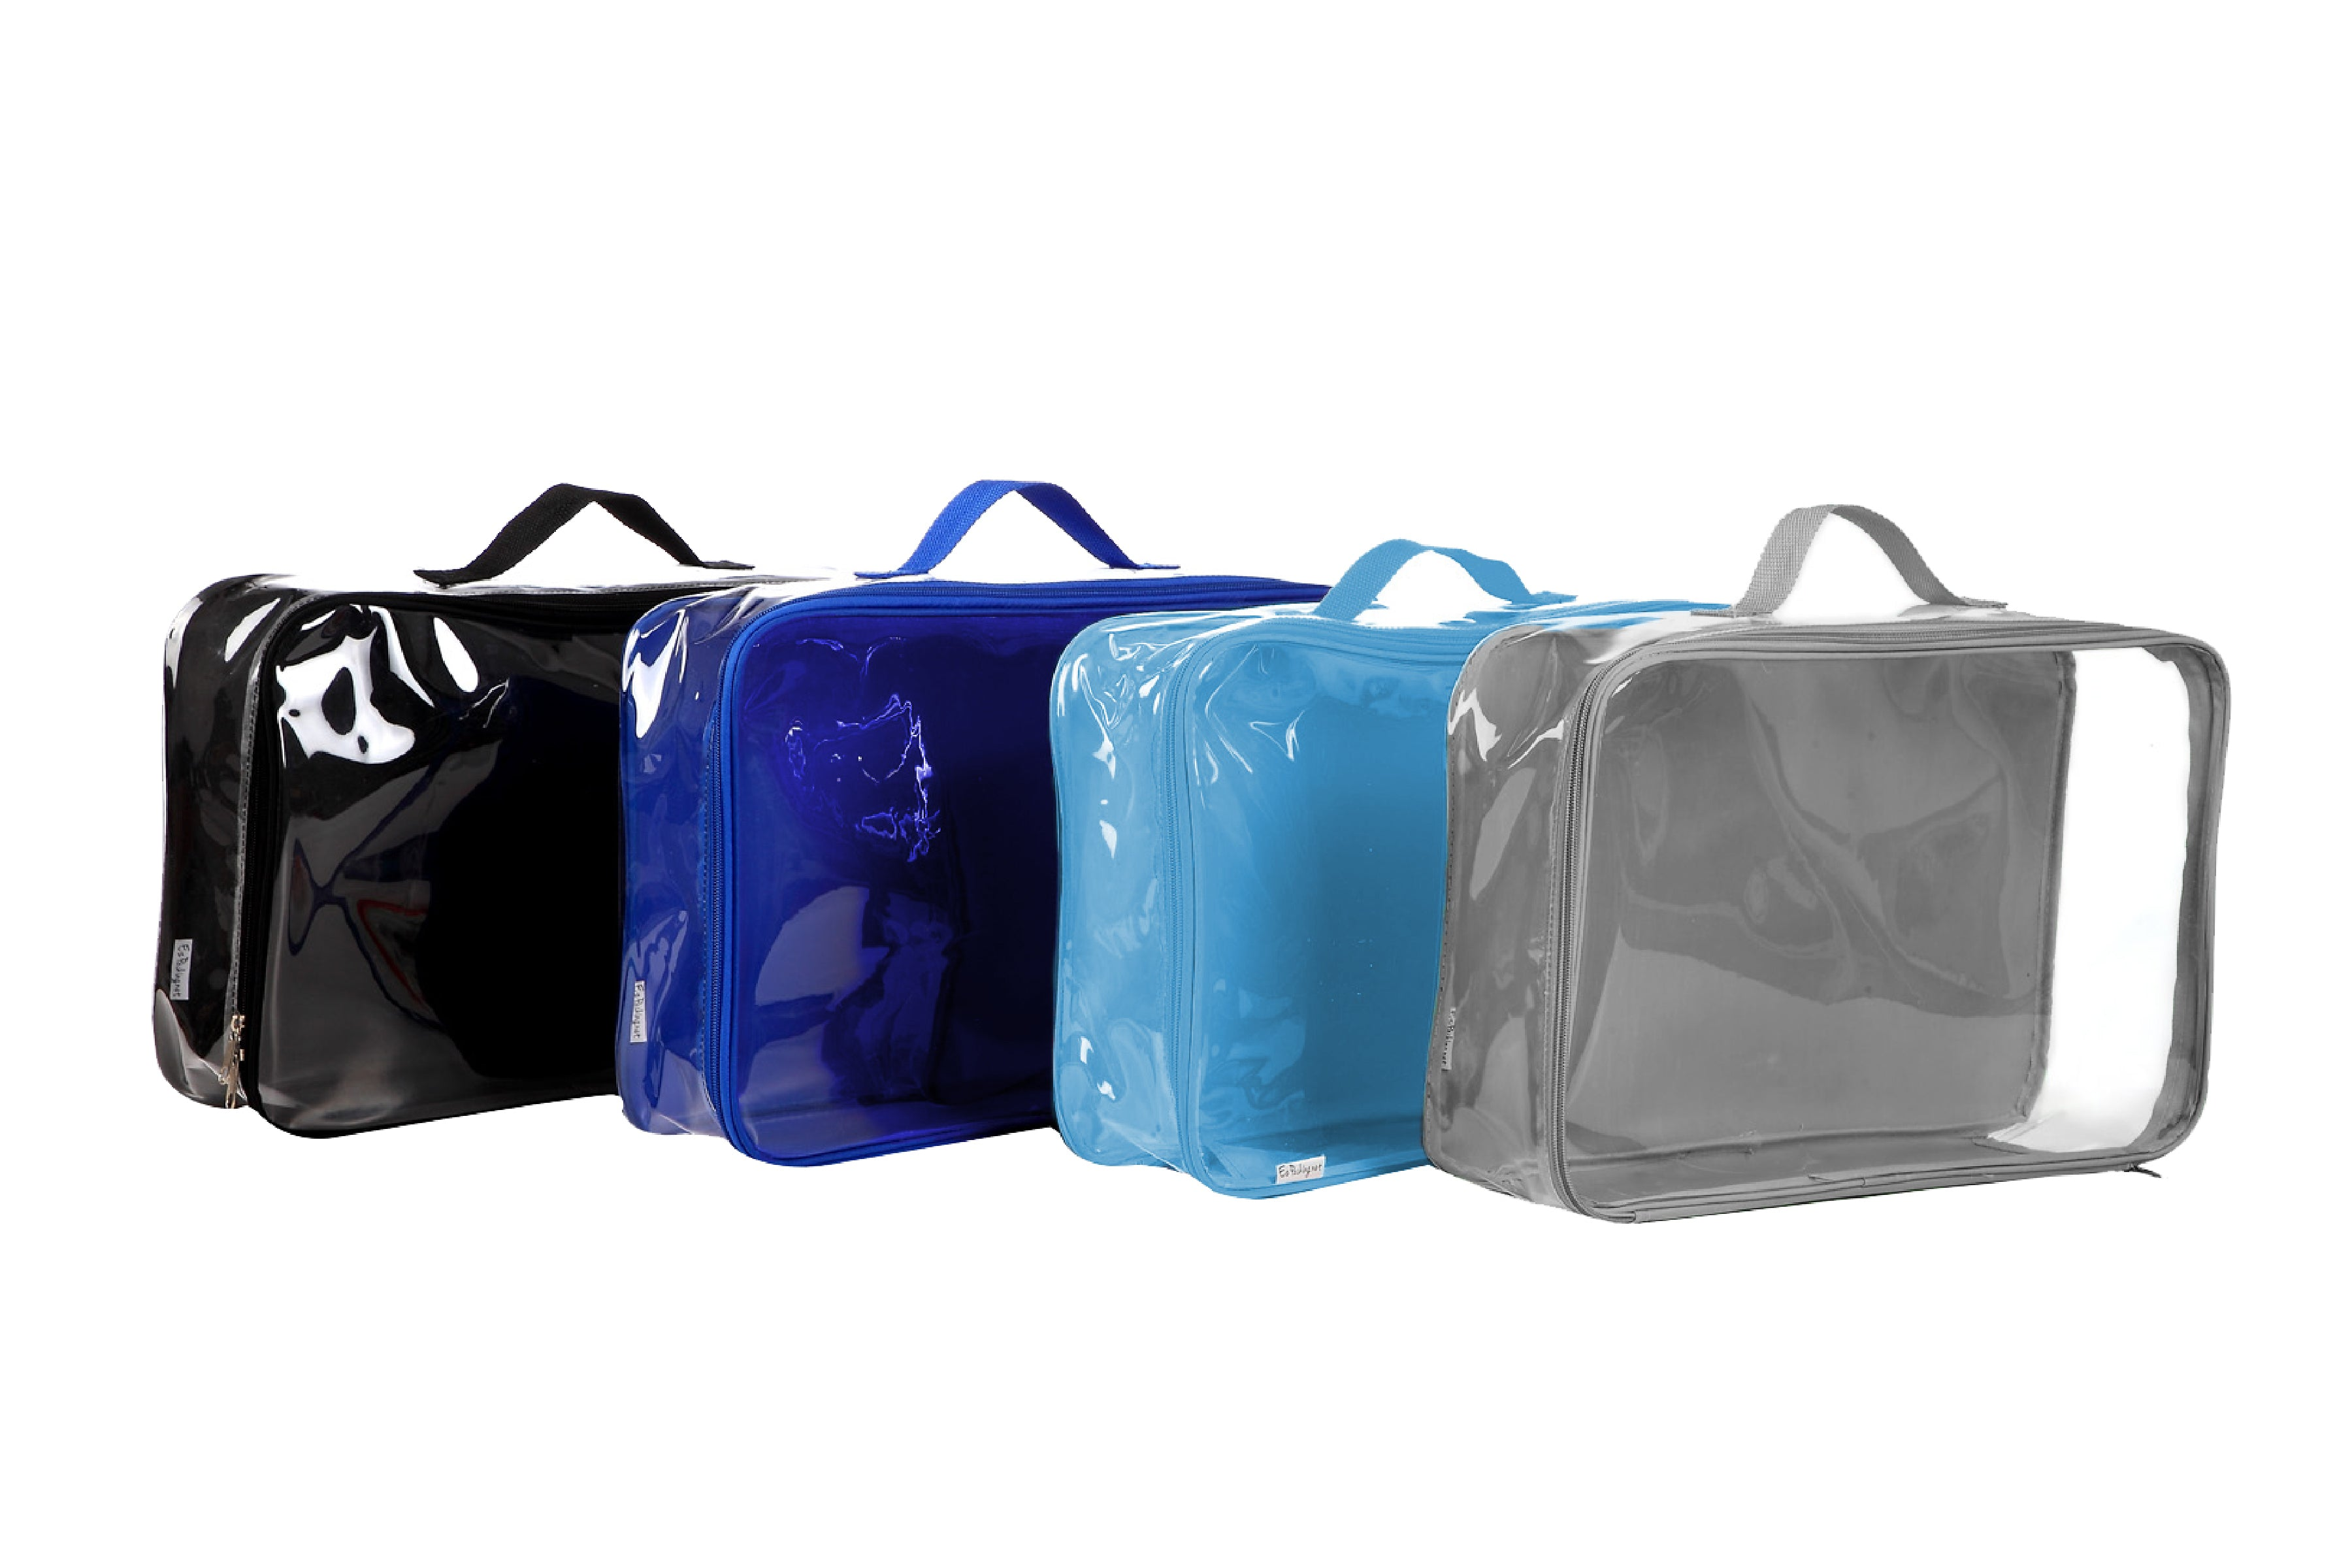 EzPacking | Clear Travel Packing Cubes and Packing Organizers ...